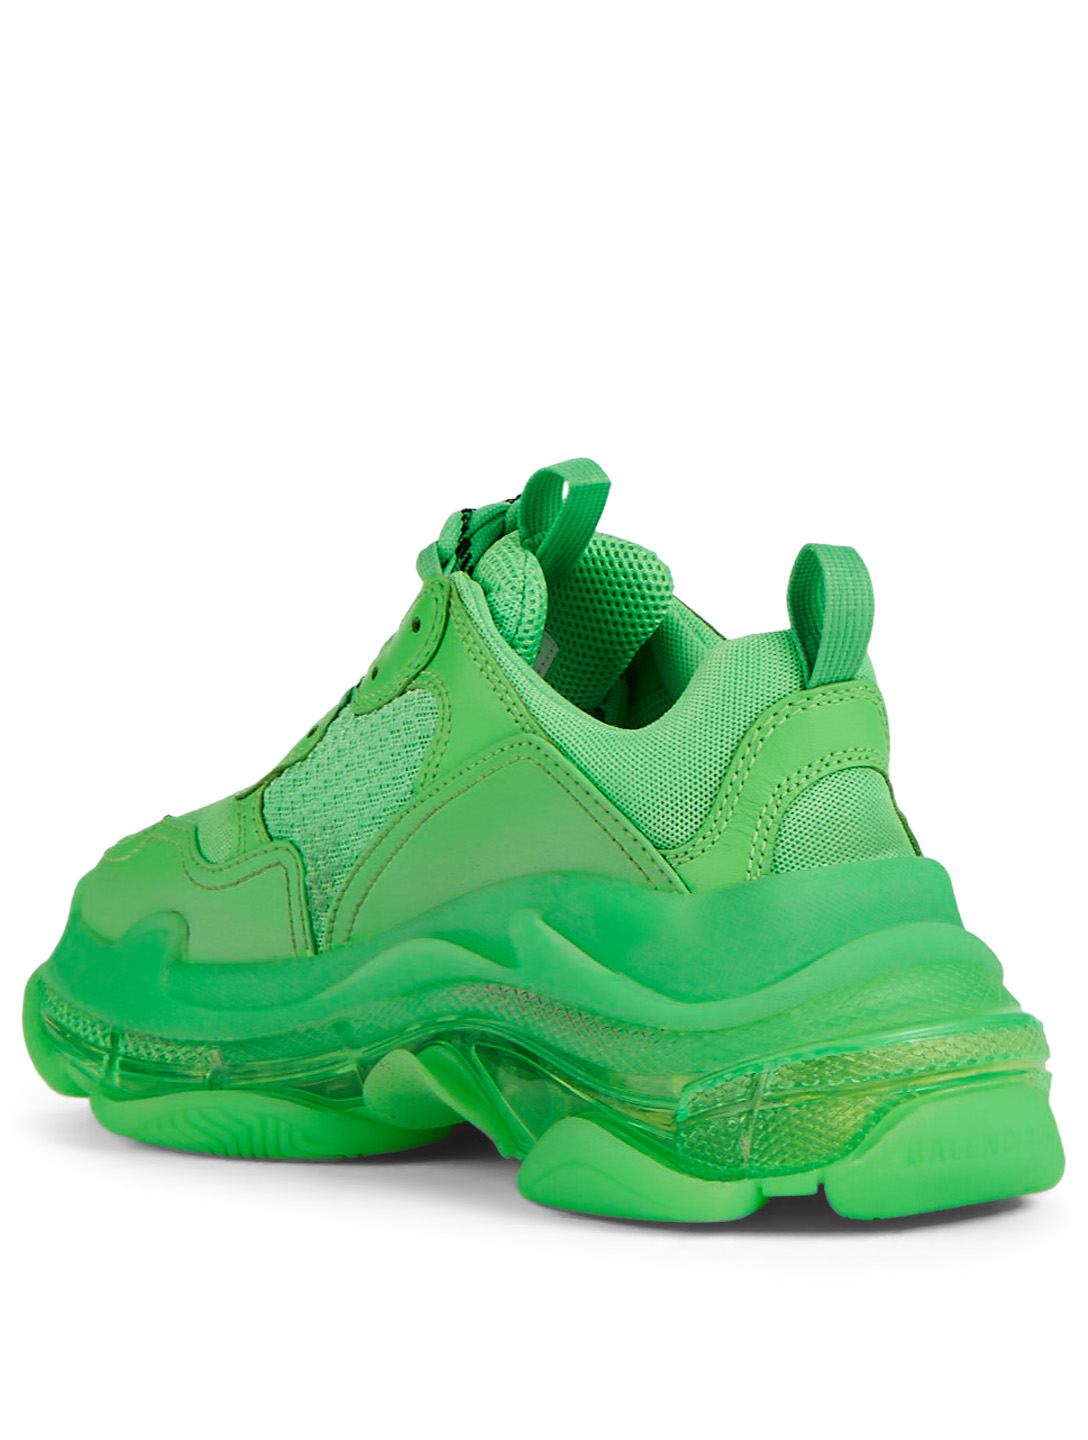 a8a8db2ee7fce ... BALENCIAGA Triple S Bubble Mesh And Leather Sneakers Women s Green ...